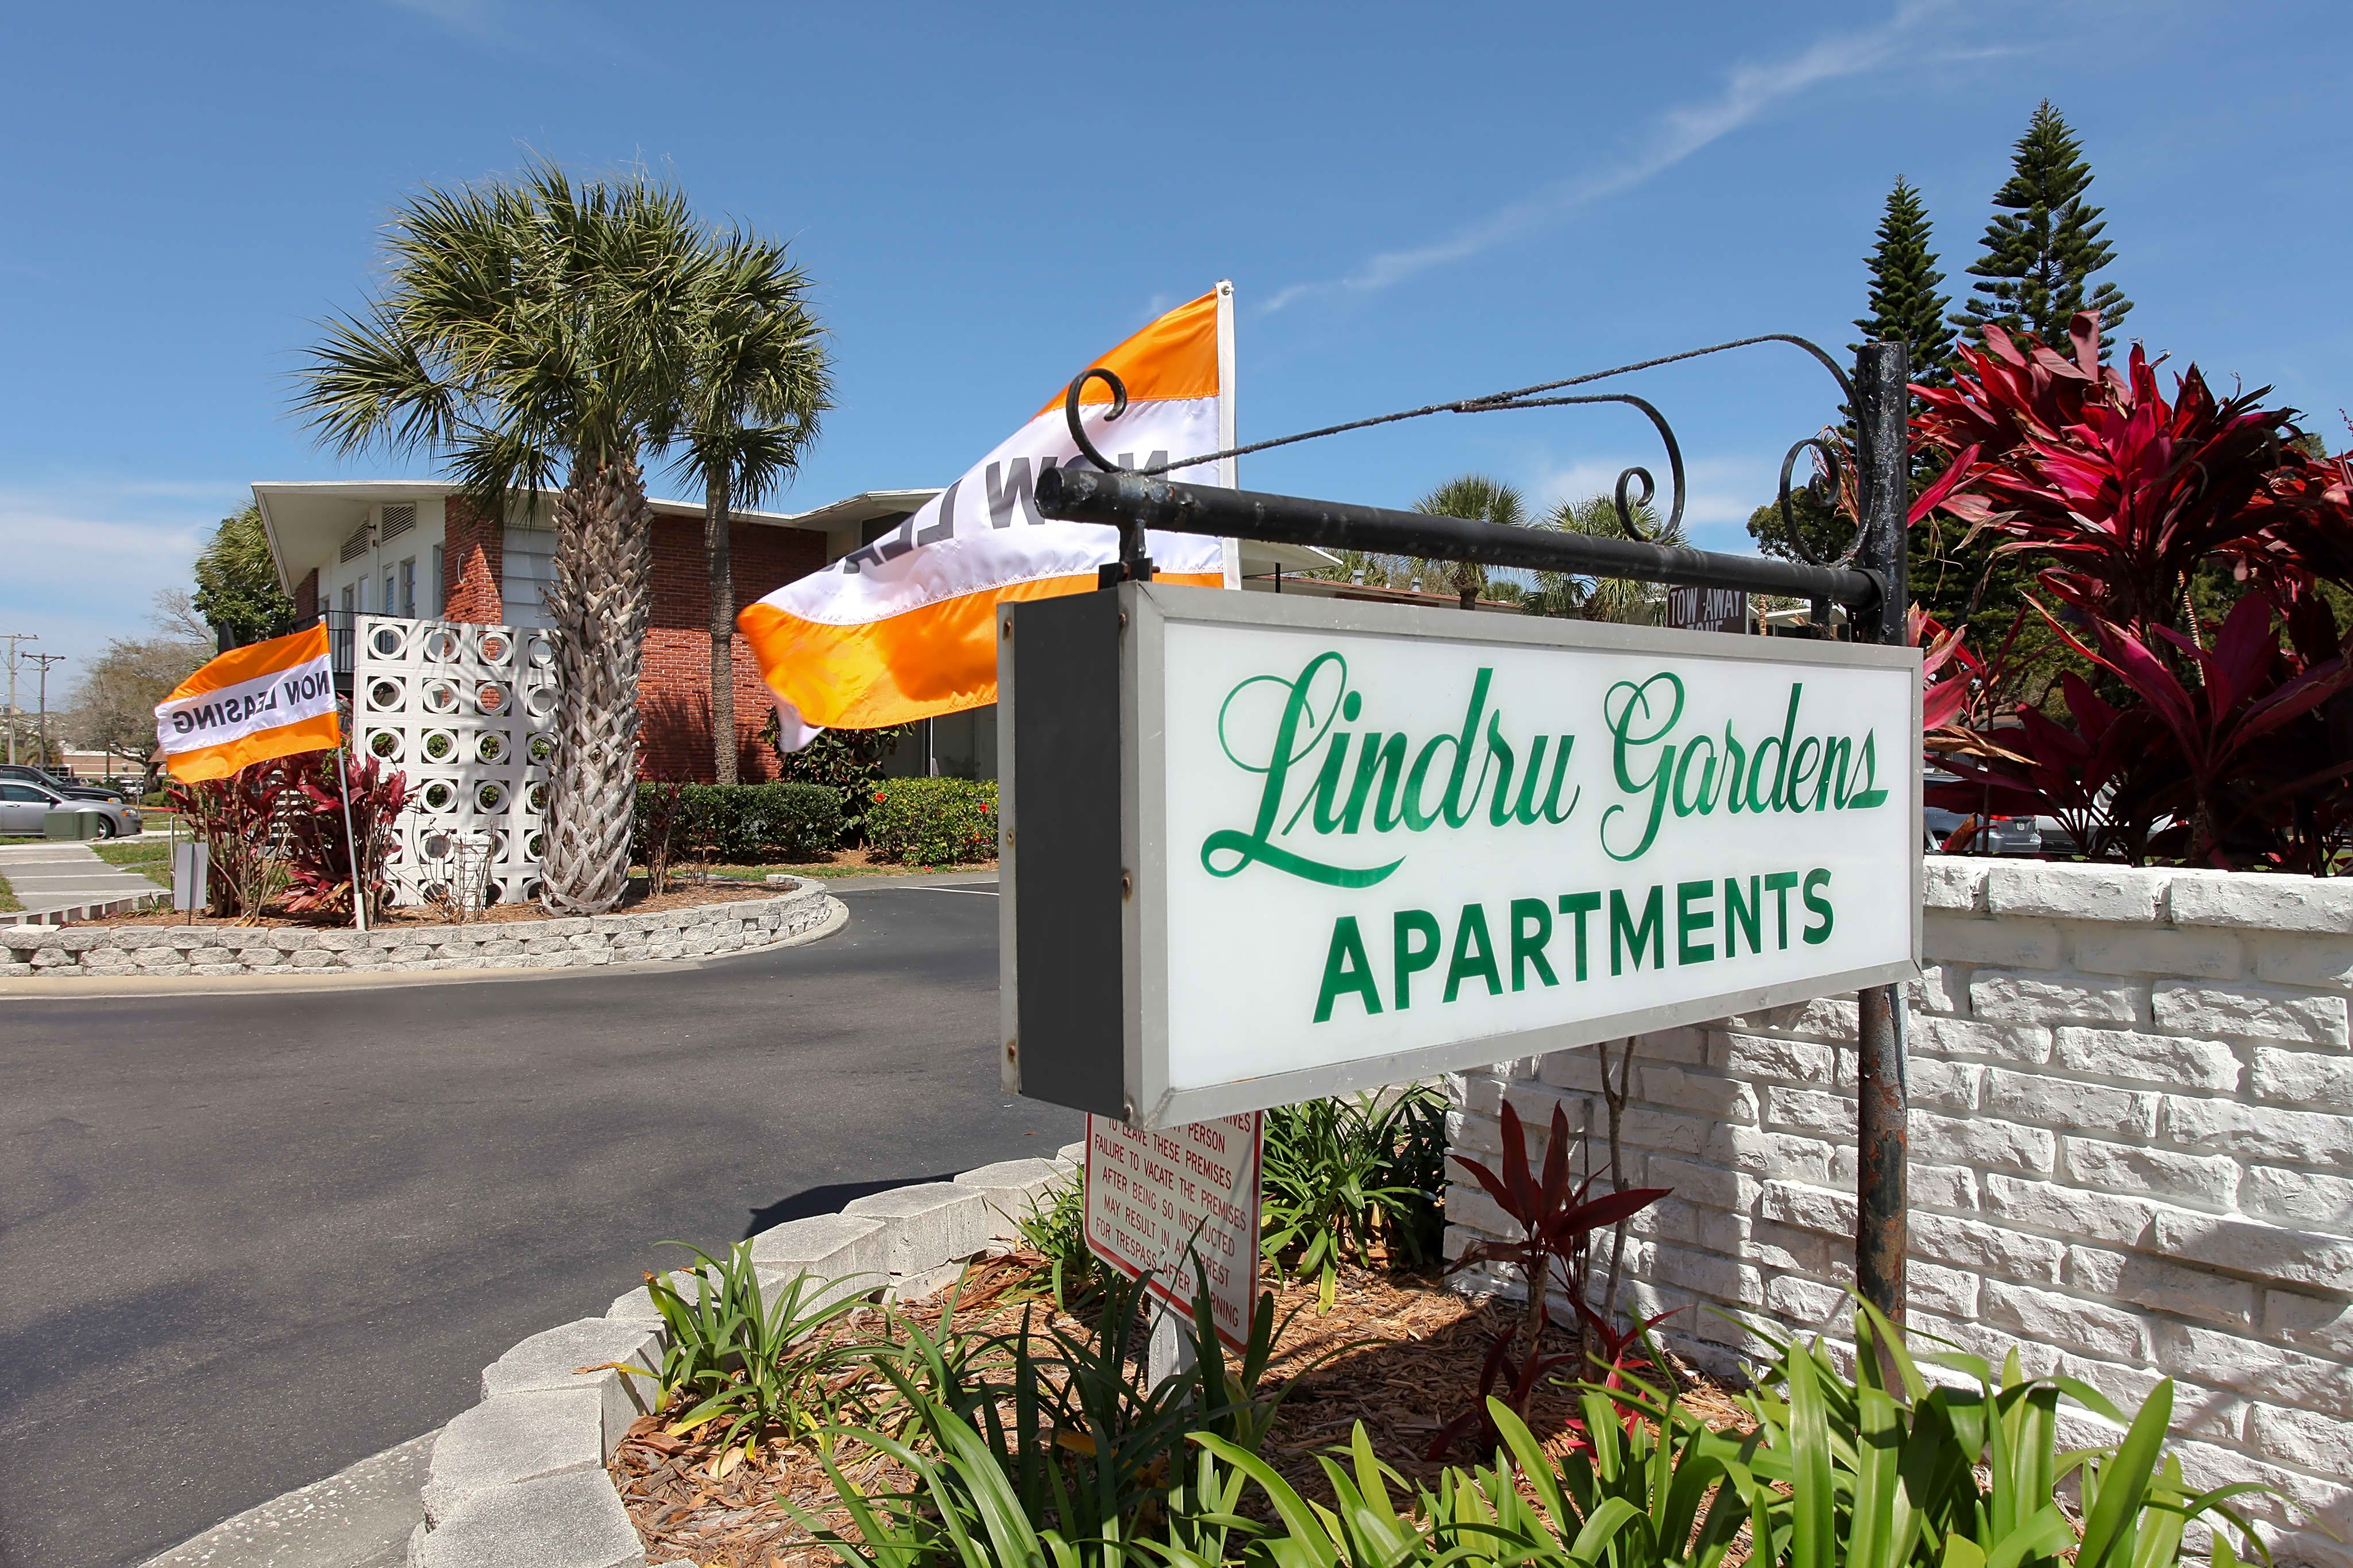 Apartments Near CCC Lindru Gardens for Clearwater Christian College Students in Clearwater, FL